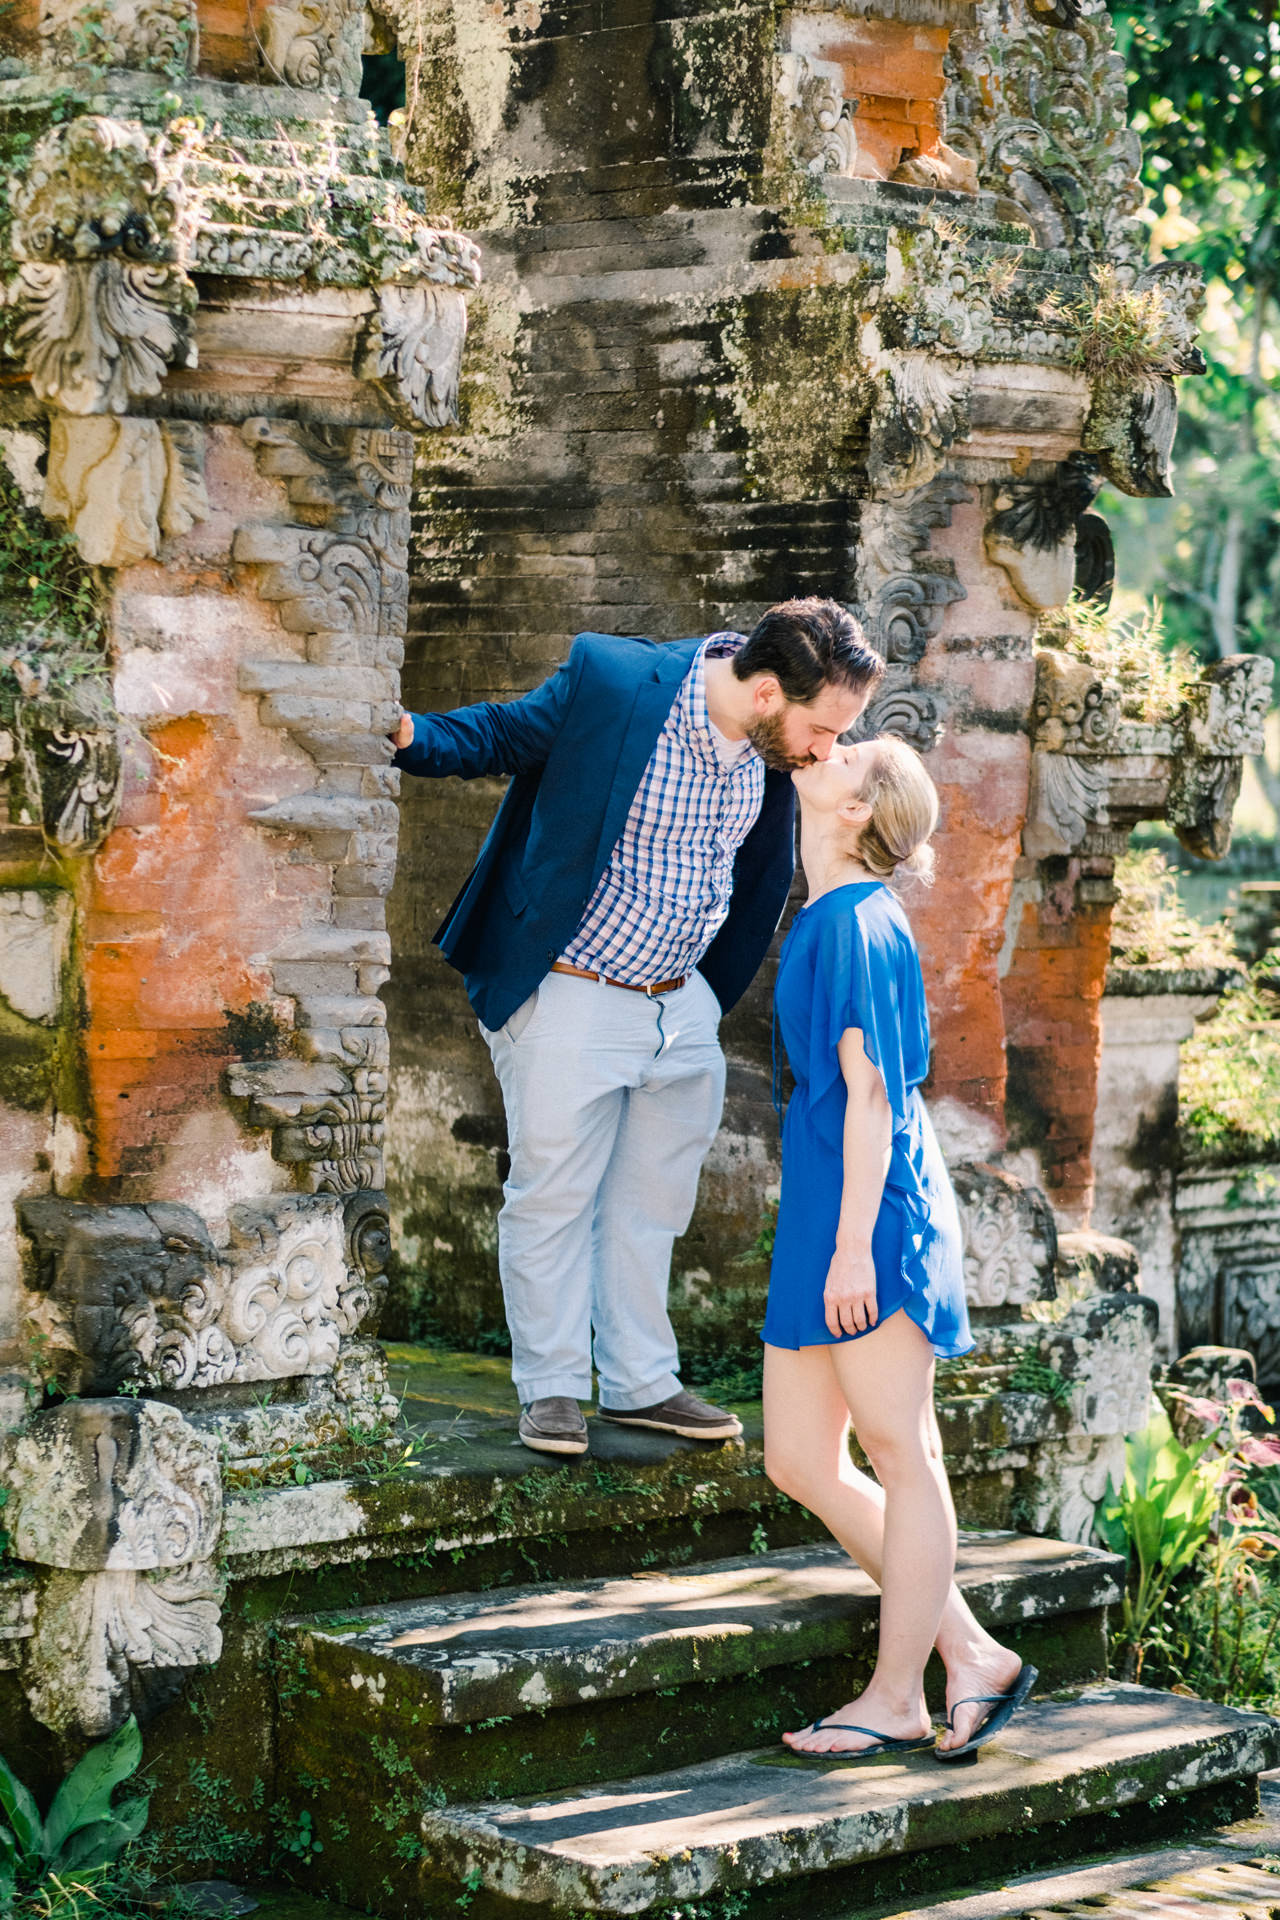 B&M: Surprise Proposal on Bali Vacation 11